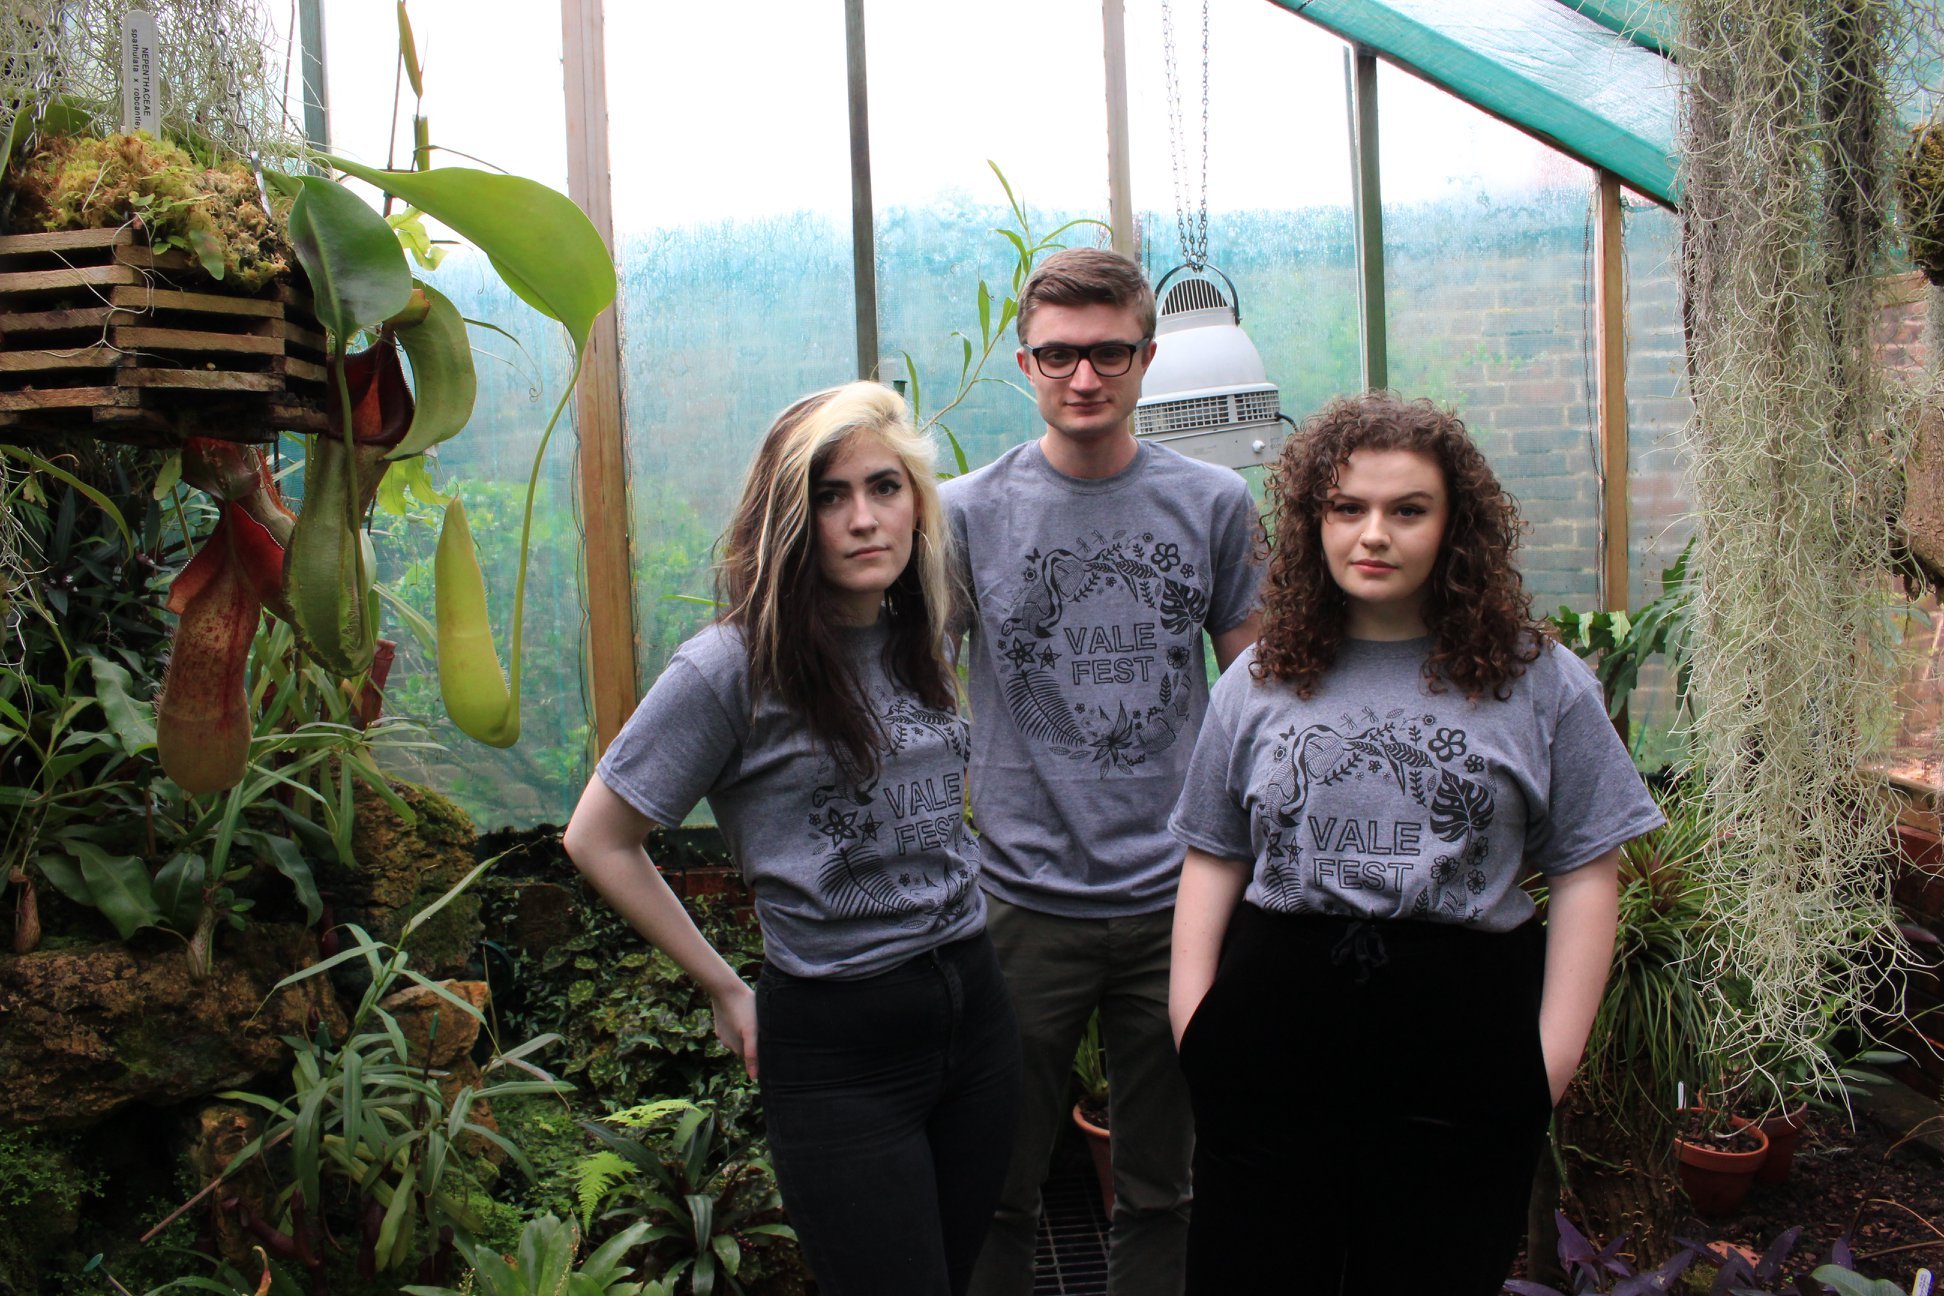 Heather Grey ValeFest T-shirt with Jungle Leaves and Snake Design